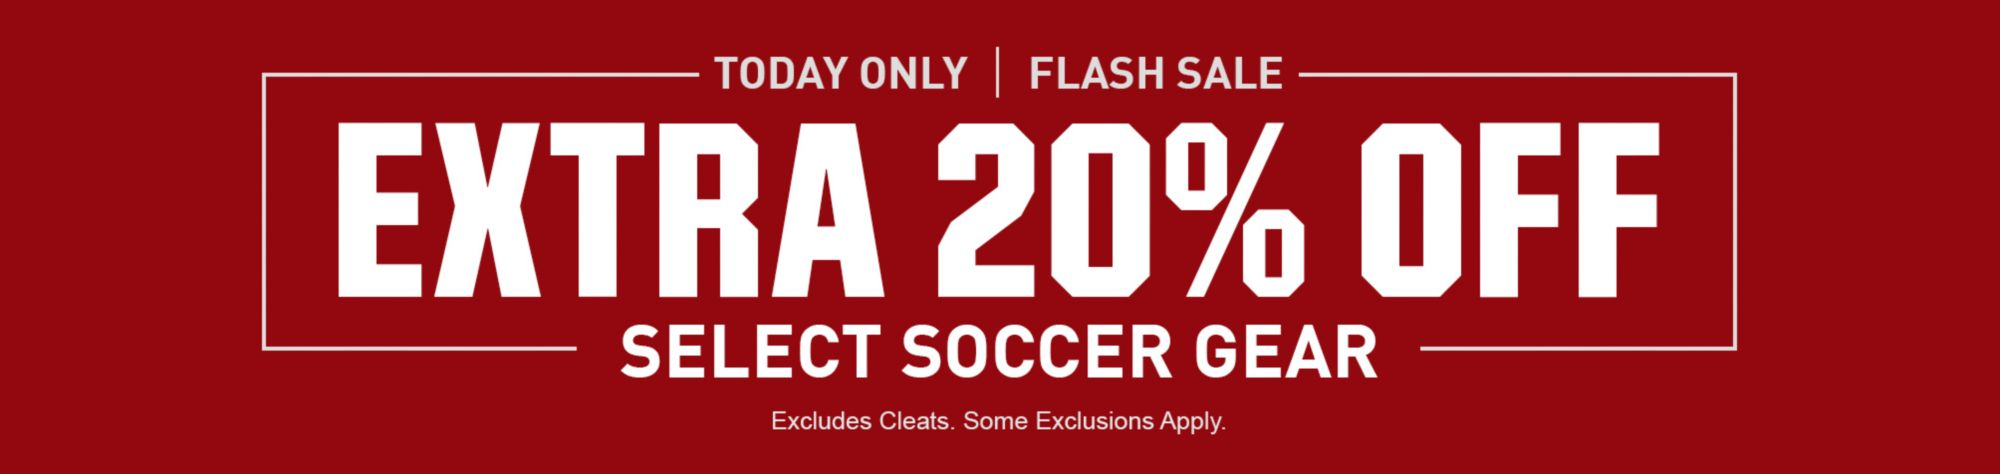 Extra 20% Off Select Soccer Gear - Today Only